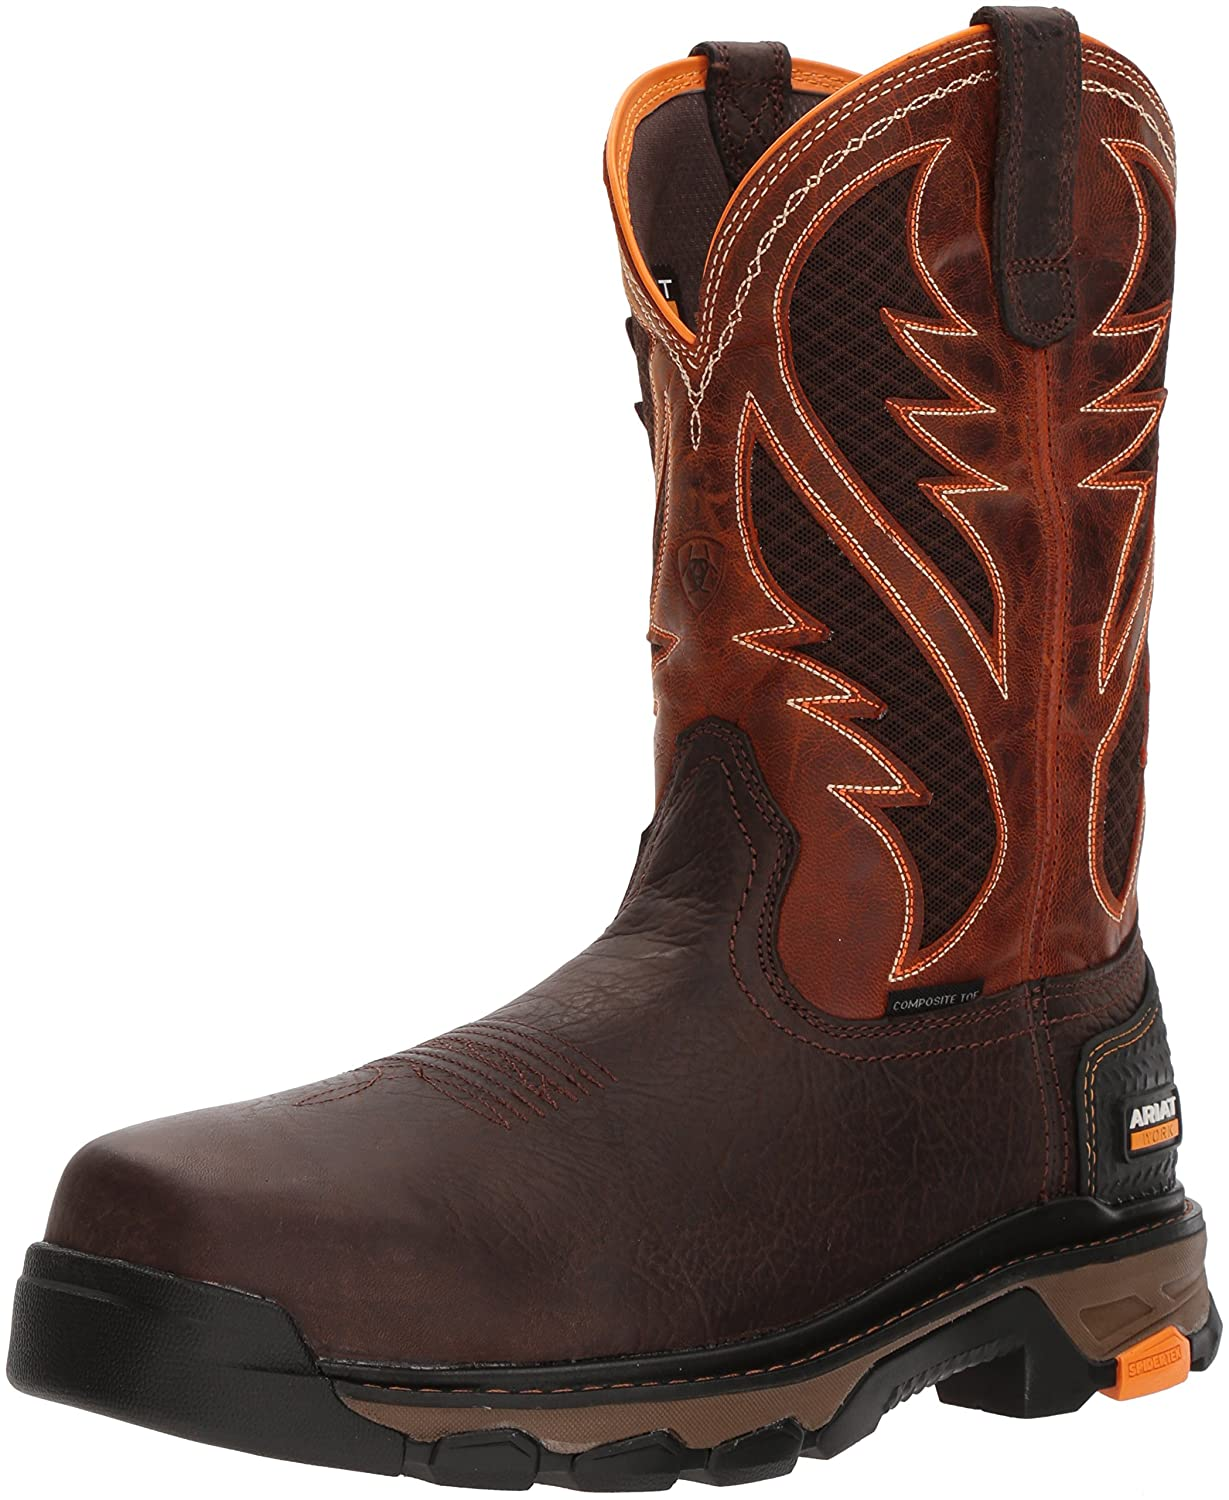 Ariat Work メンズ Intrepid VentTEK Composite Toe Bruin Brown/Sassy Orange 12 D(M) US 12 D(M) USBruin Brown/Sassy Orange B076MCYR9W